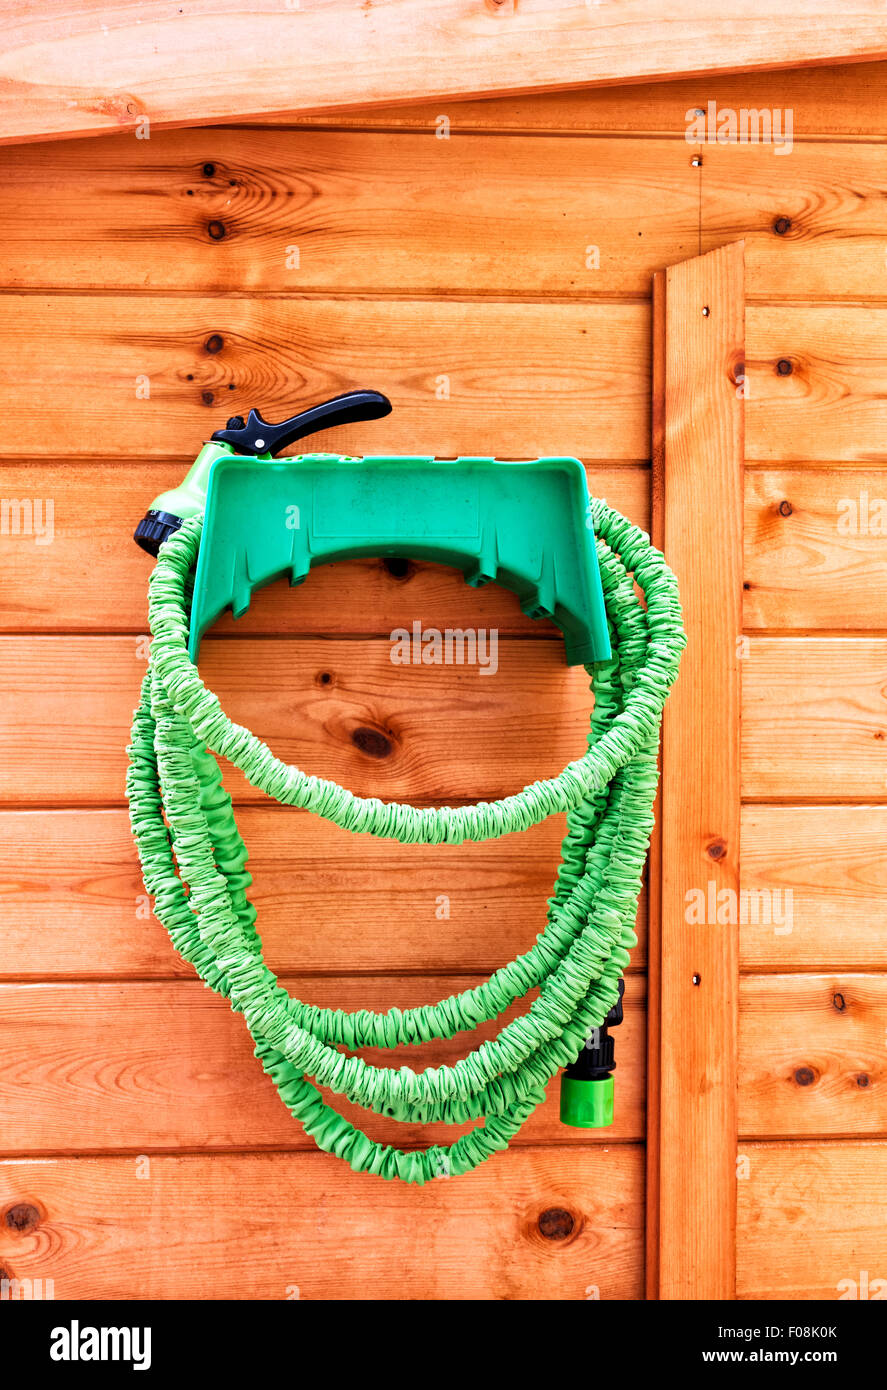 how to keep garden hose from kinking